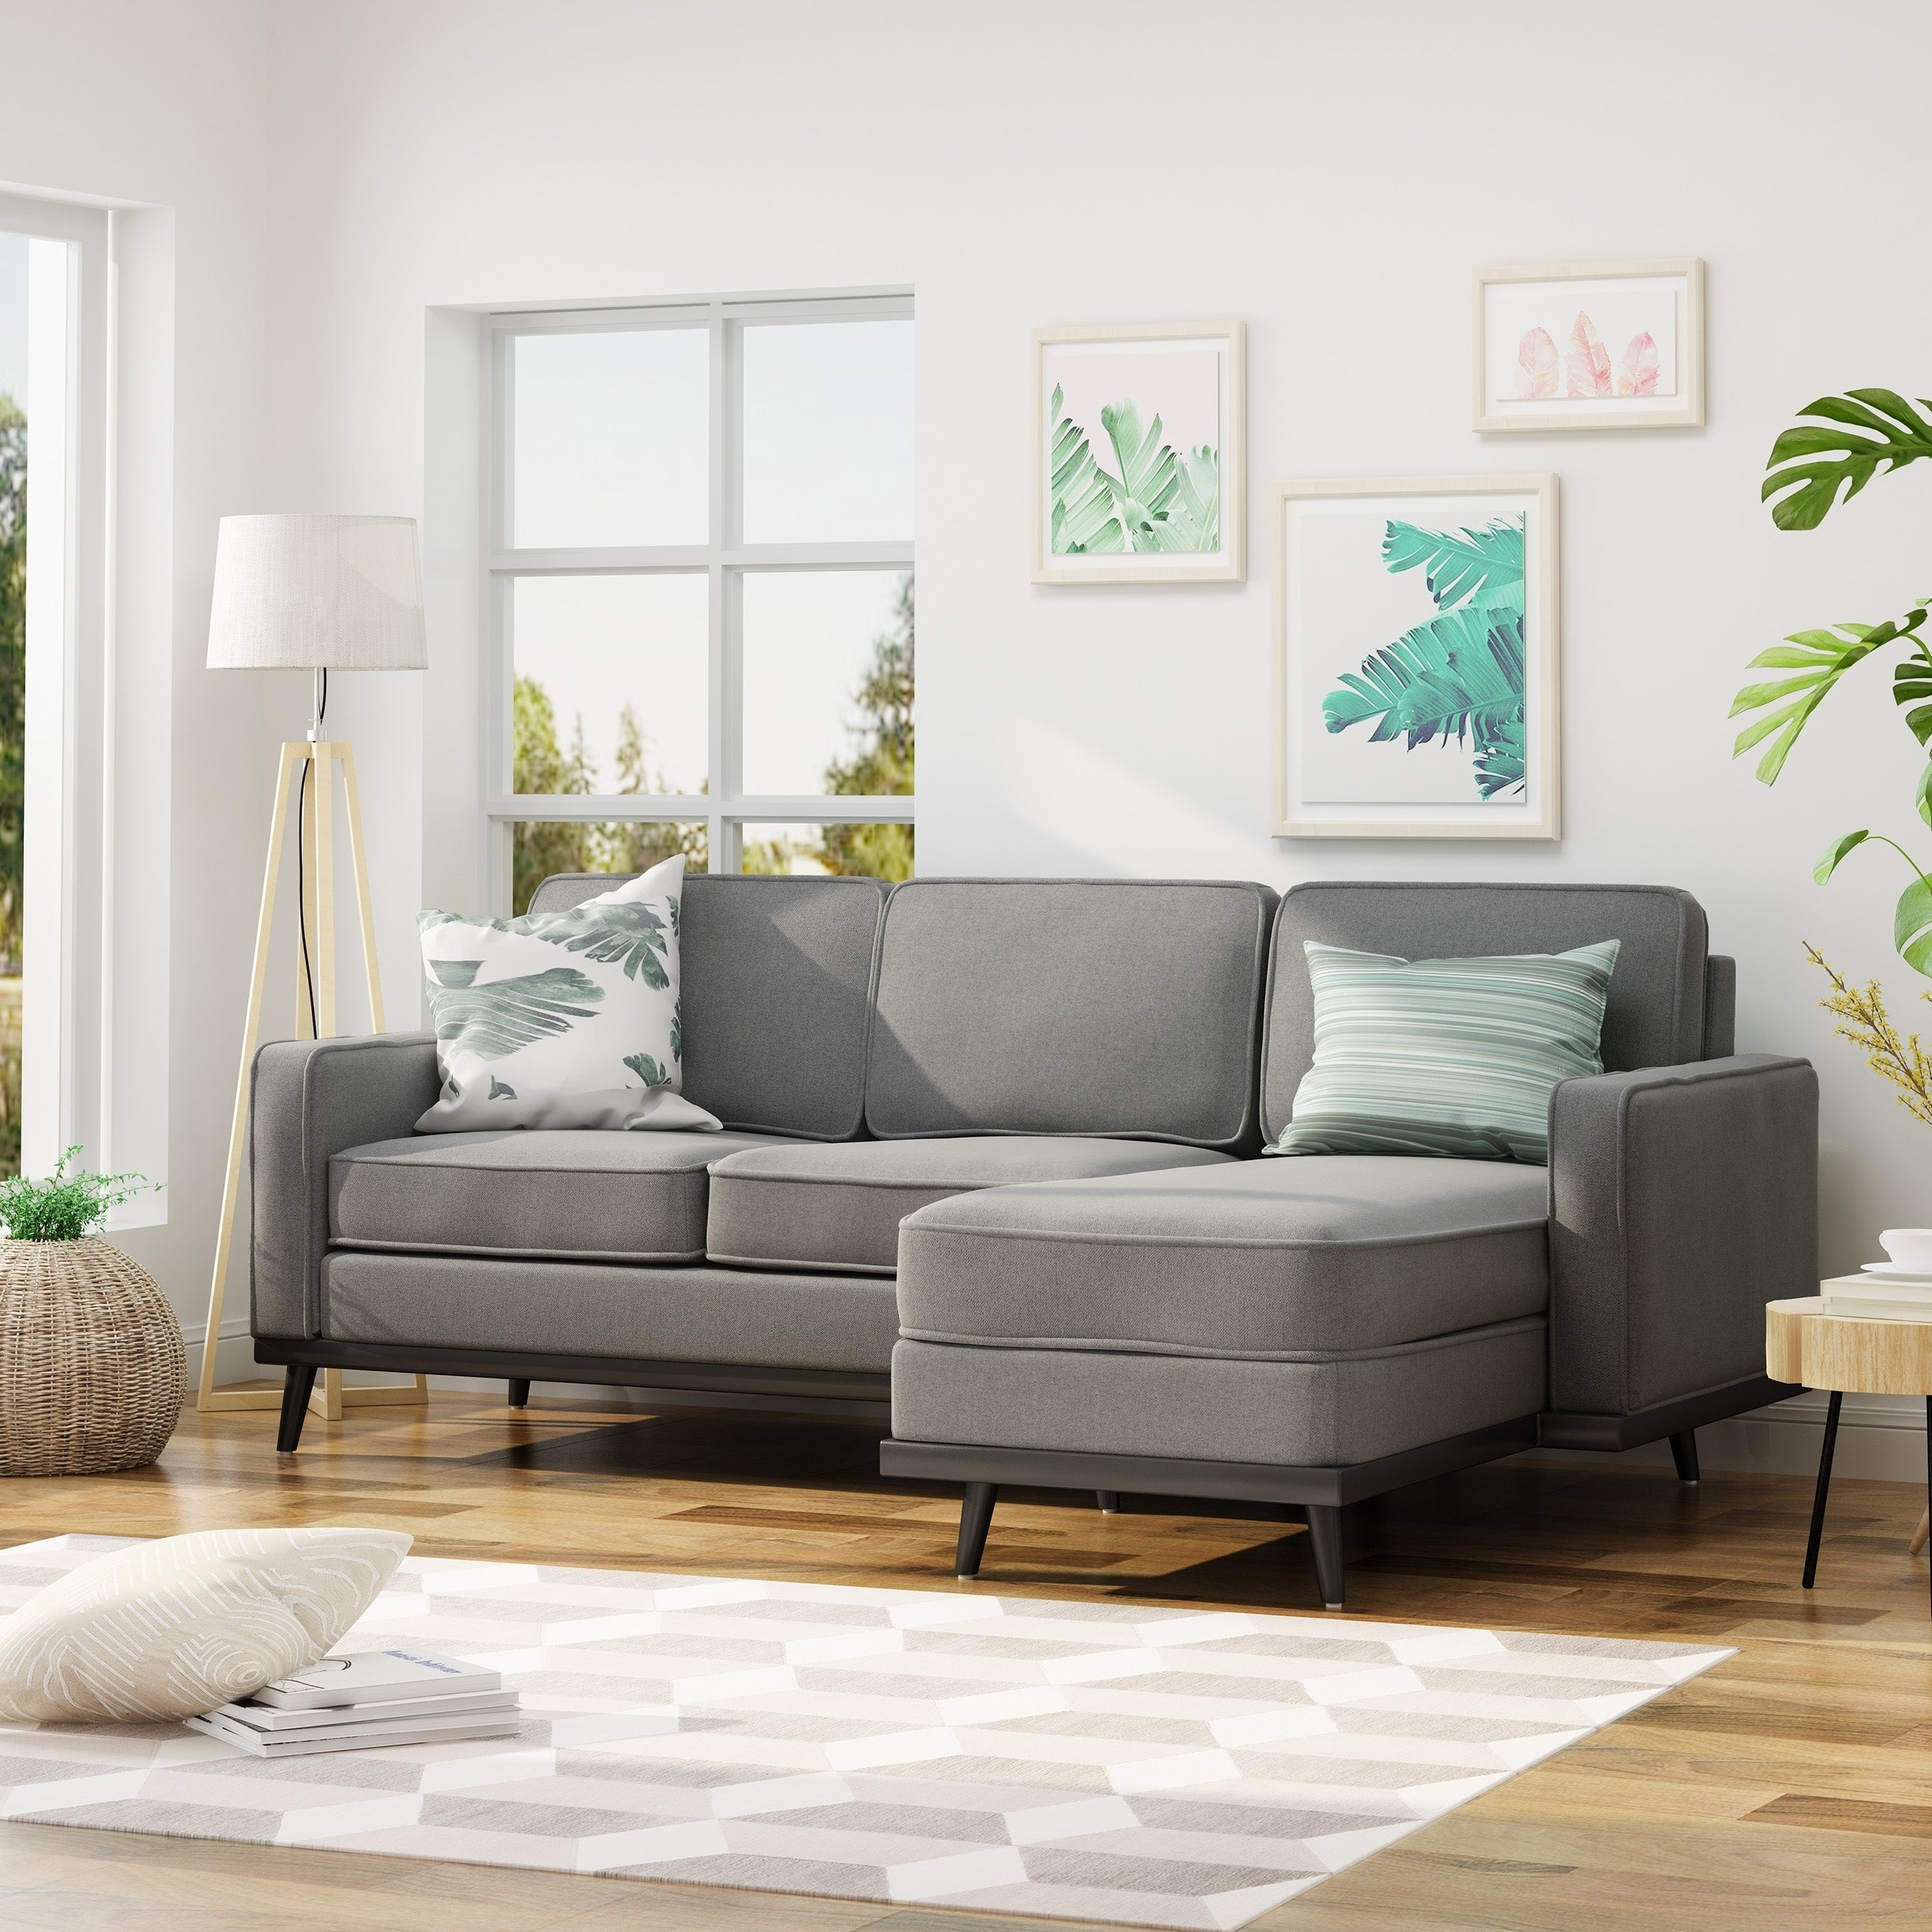 Buy Grey Sectional Sofas Online At Overstock.com | Our Best Living Room  Furniture Deals